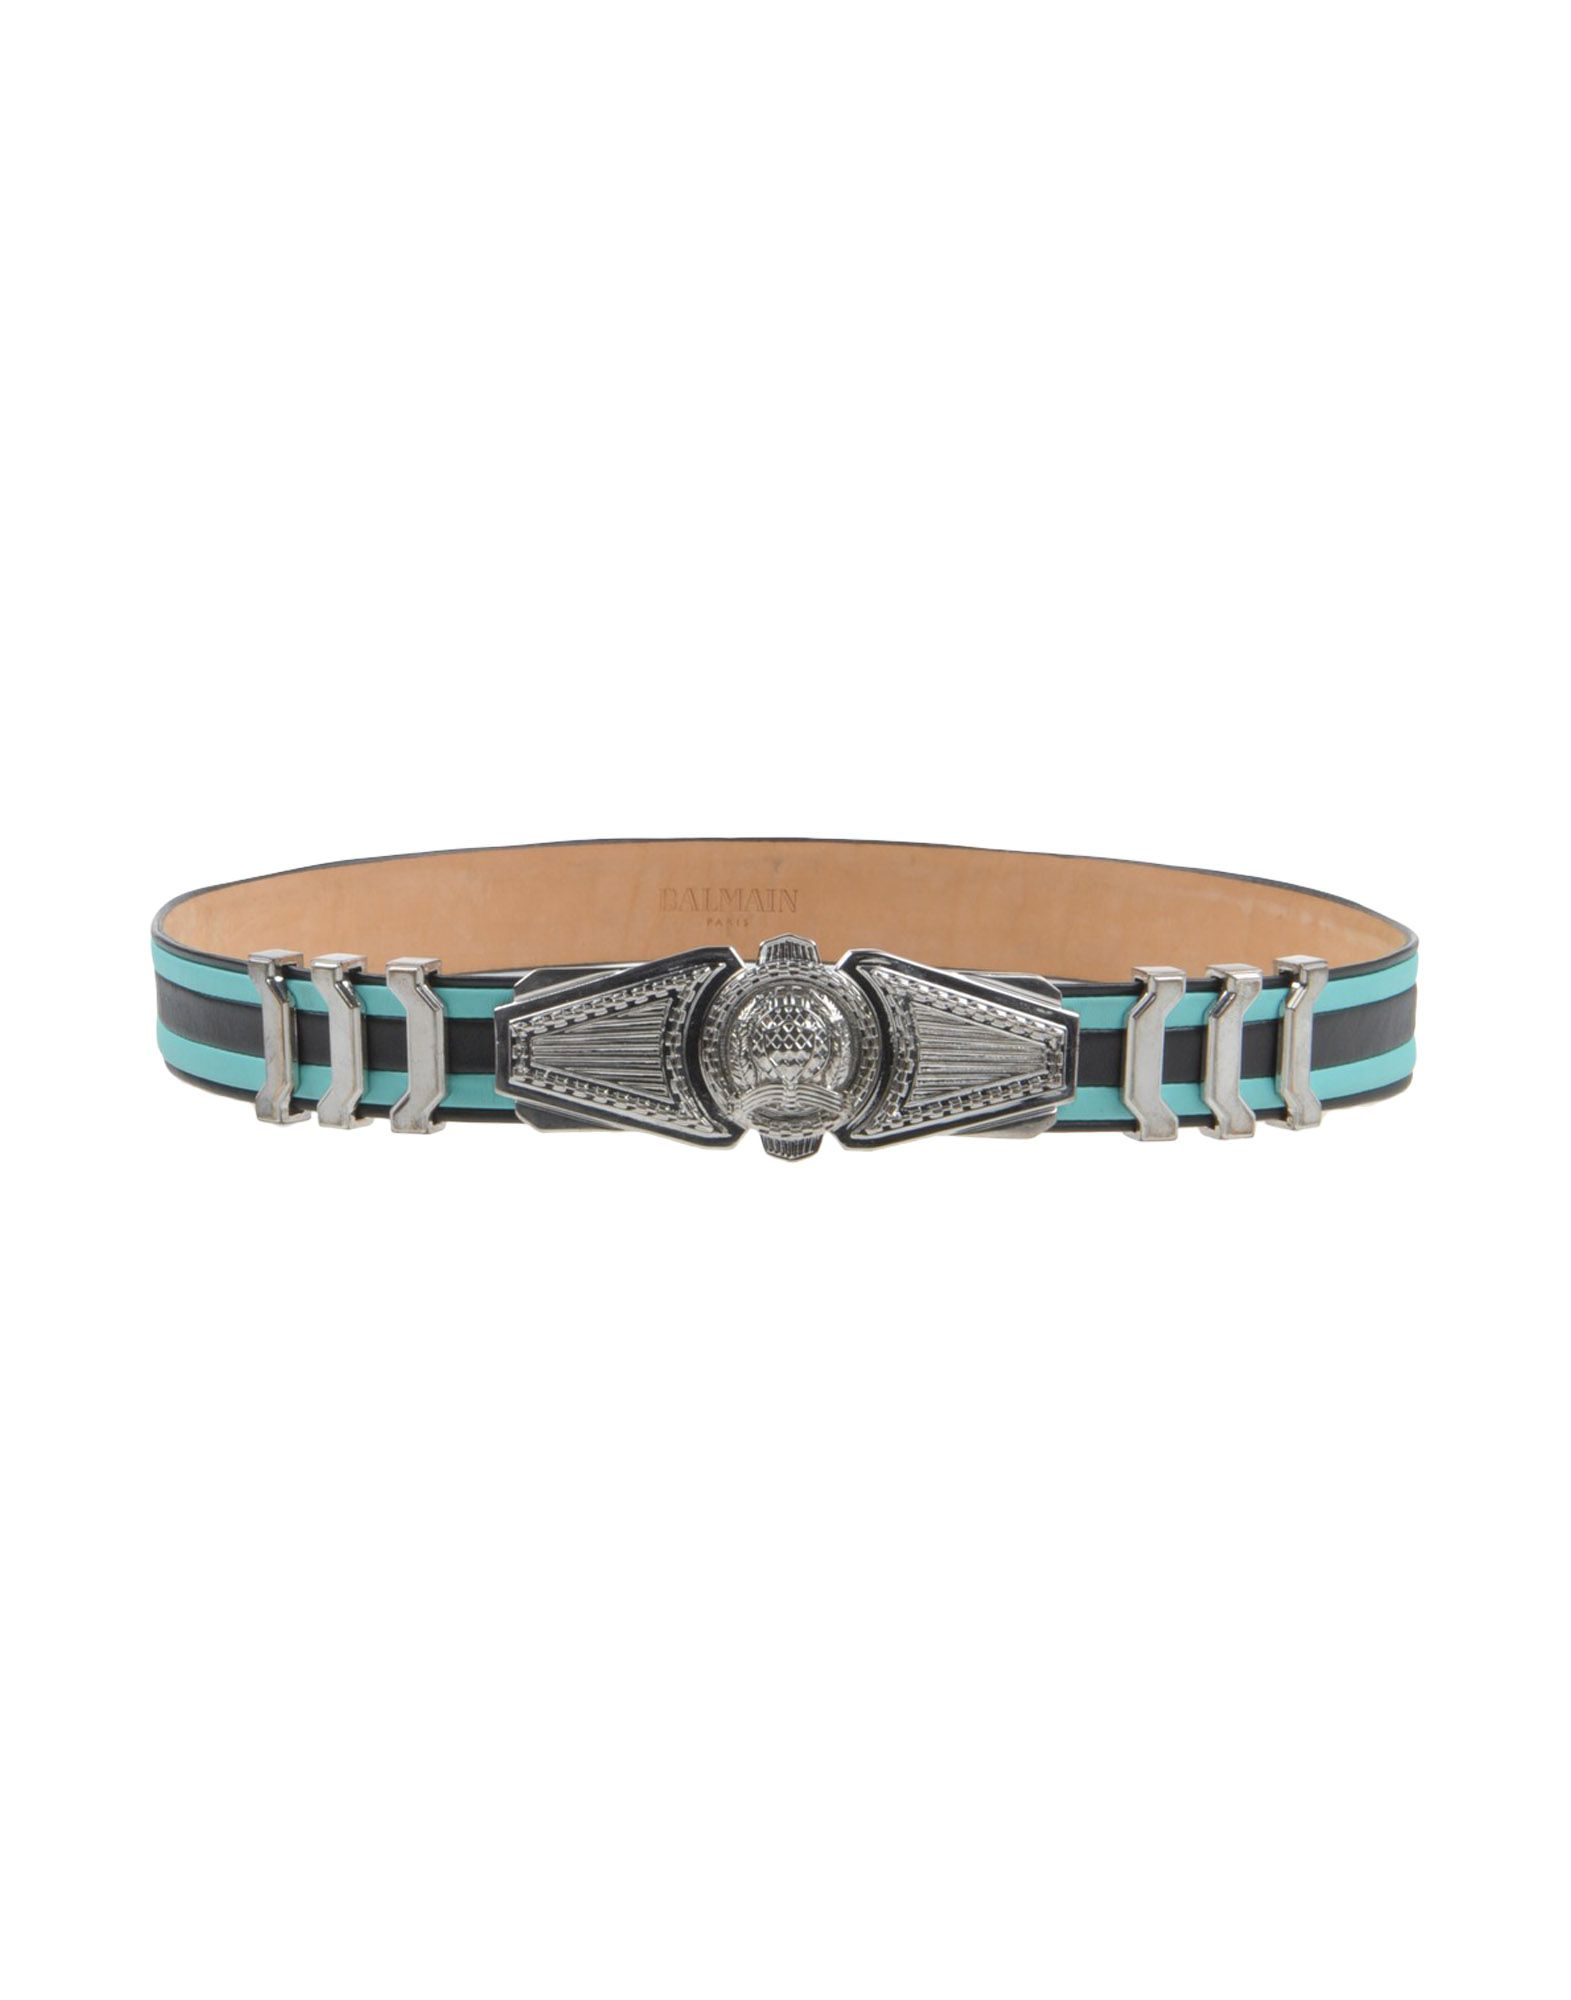 Men's Balmain Belts Esteemed French designer Pierre Balmain founded his eponymous fashion house in After studying architecture at the School of Fine Arts in Paris and developing an interest in couture, he launched his label and began to specialize in luxurious women's clothing.